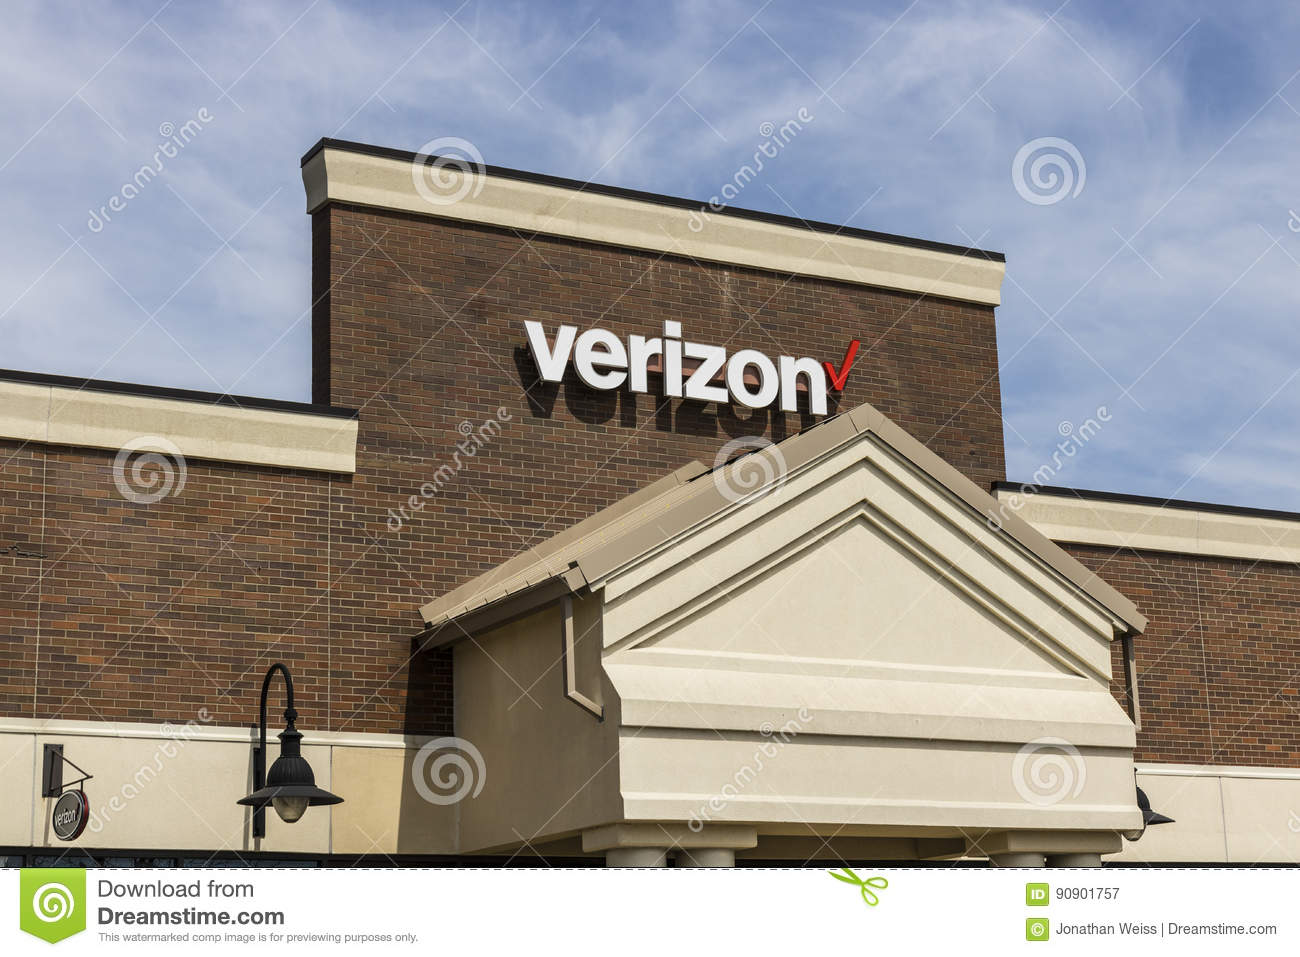 Fort Wayne - cerca do abril de 2017: Lugar do retalho de Verizon Wireless Verizon é uma das empresas as maiores da tecnologia XII